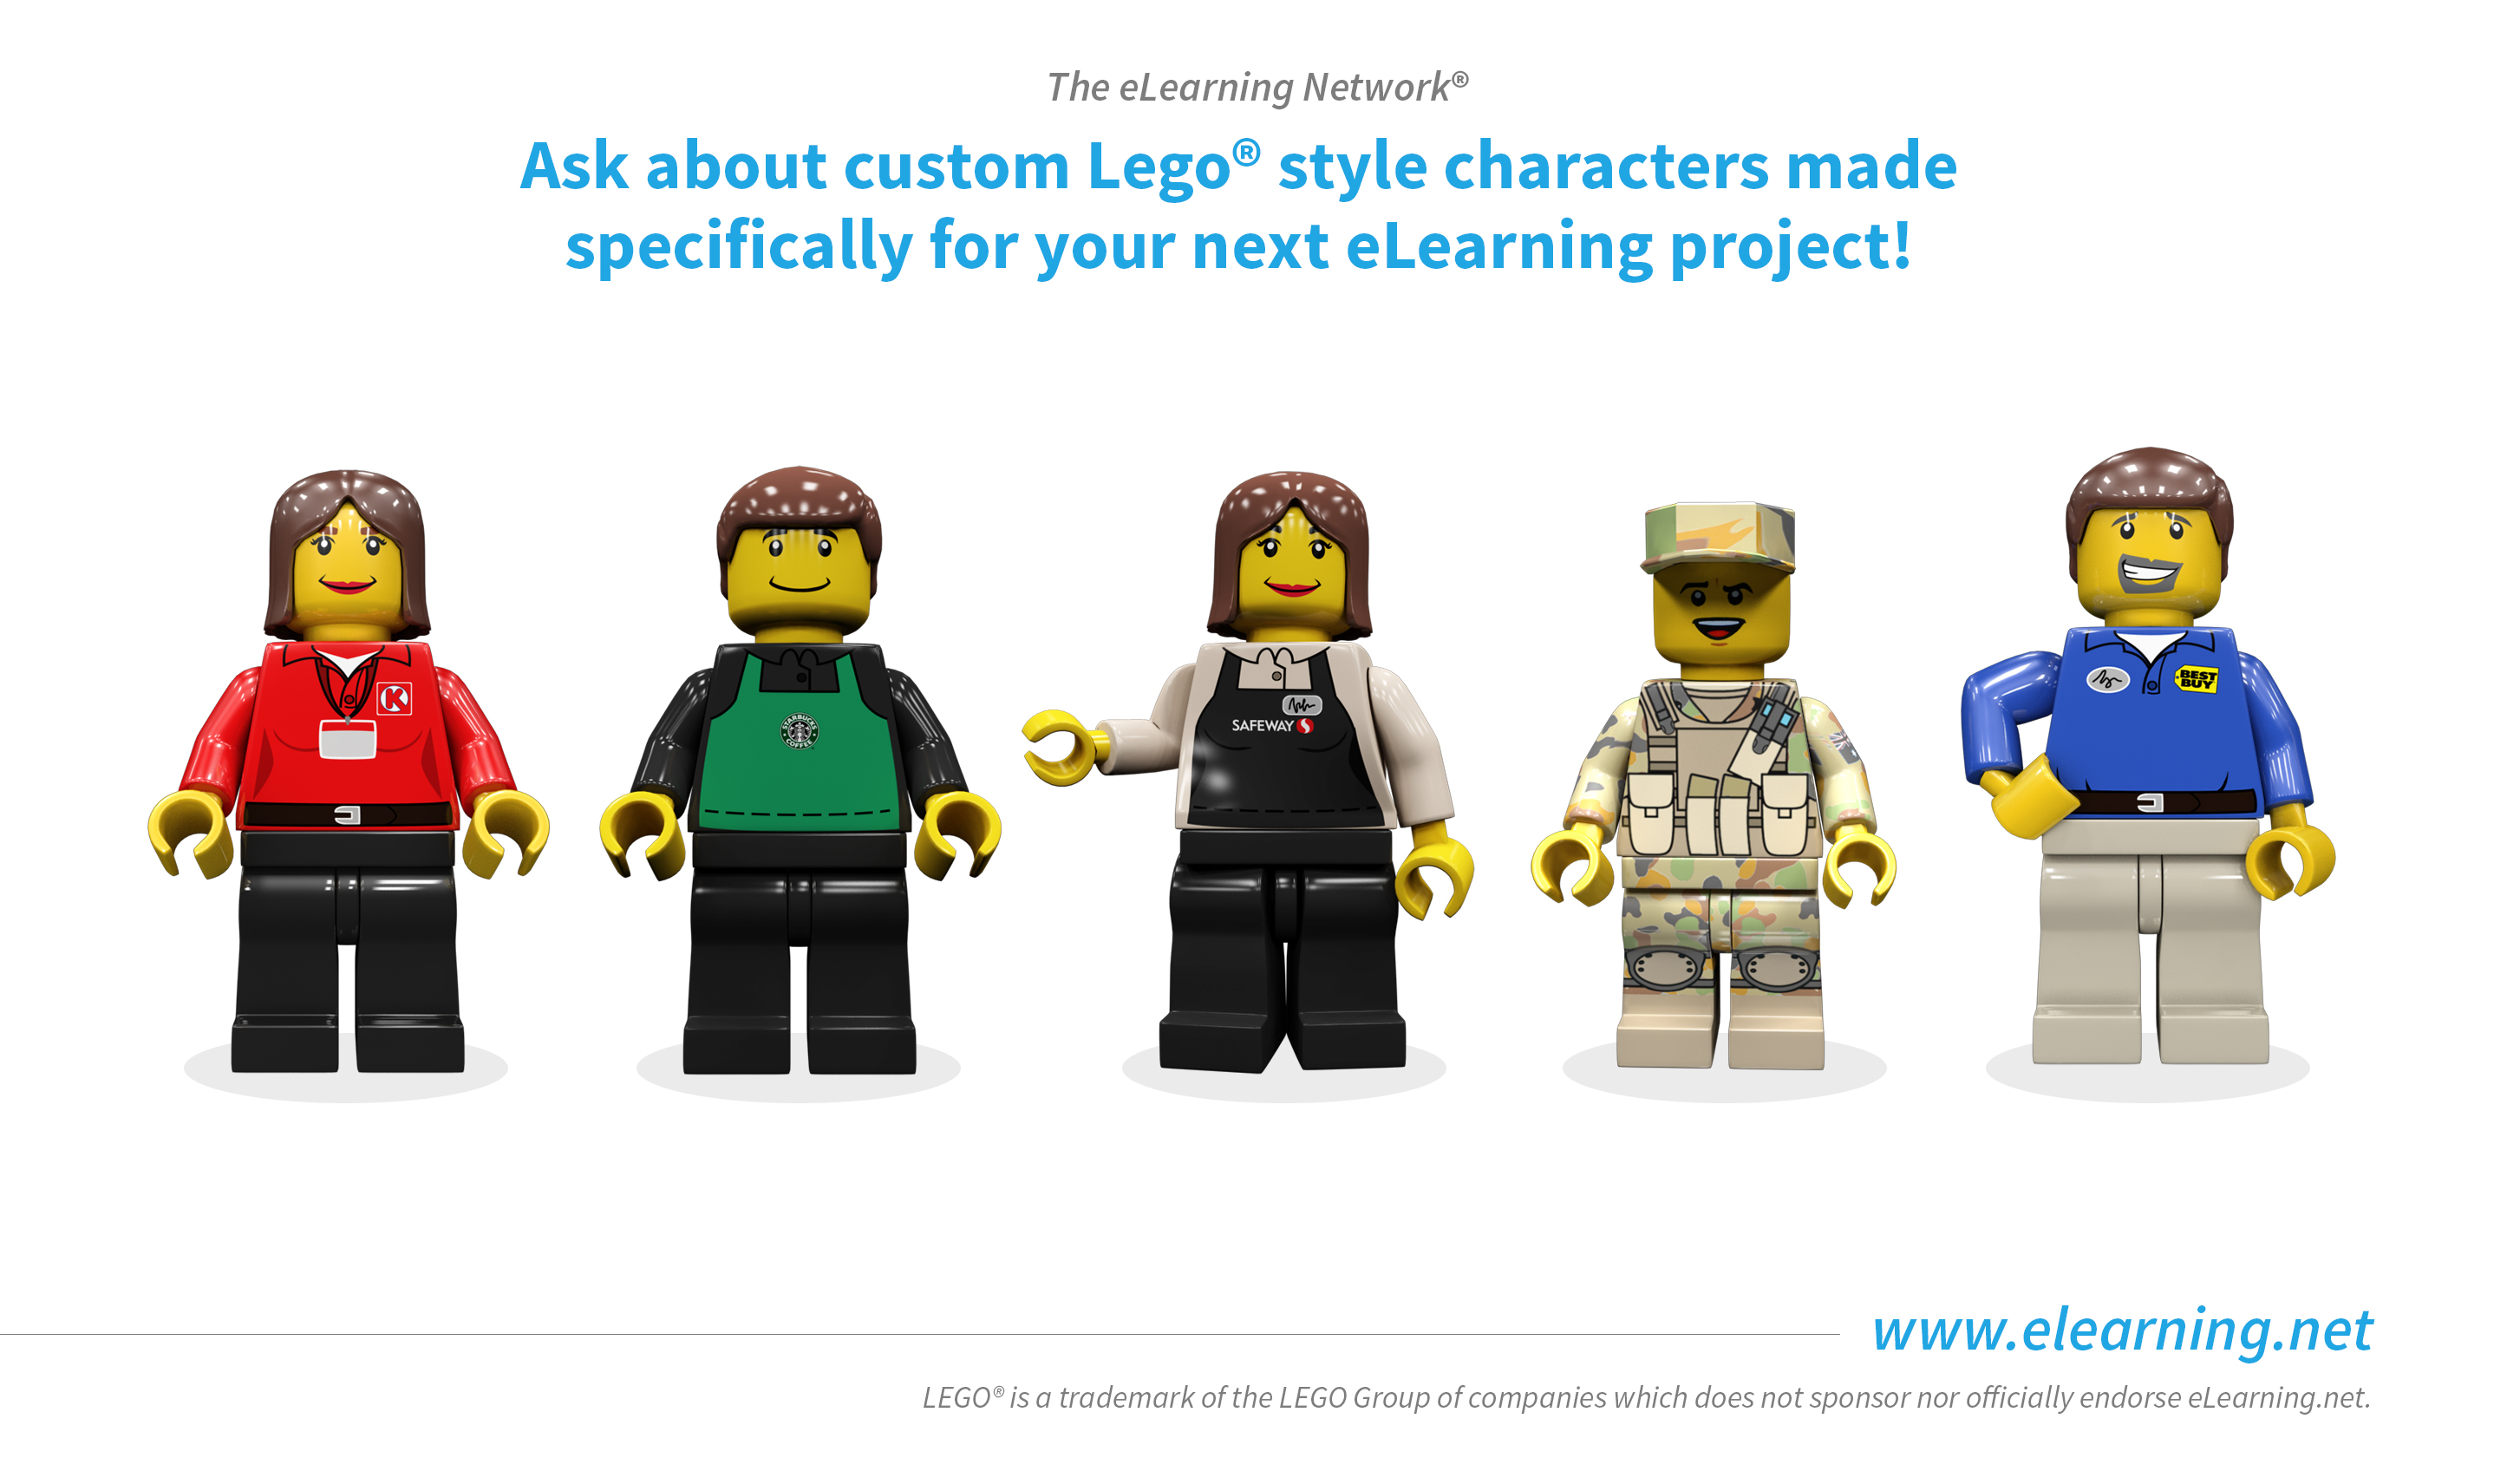 Lego-Style eLearning Characters